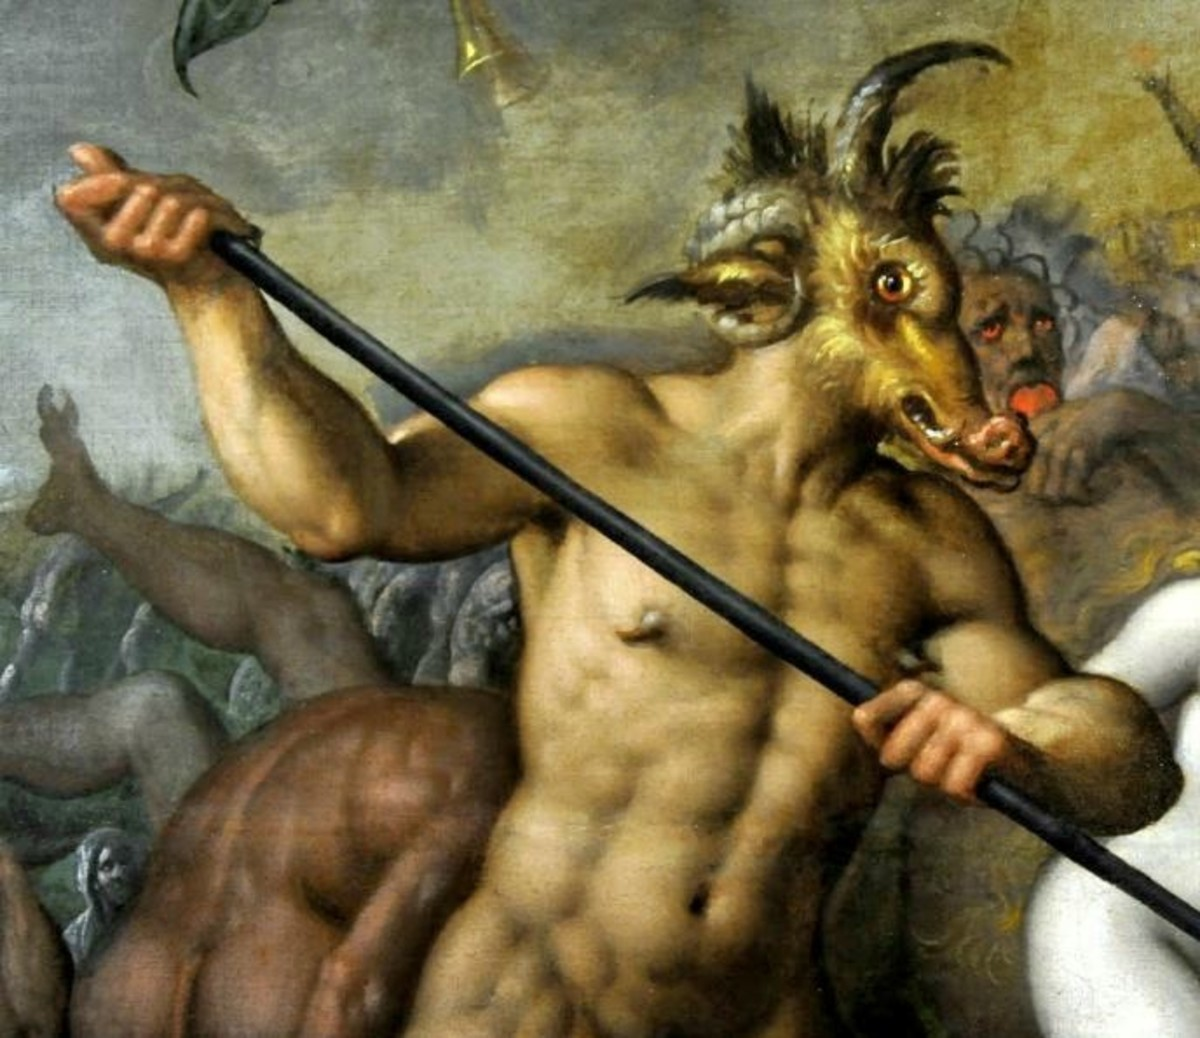 Last Judgment by Jacob de Backer. This painting depicts the Devil as often seen in Christian art, wielding a trident as his scepter and signature weapon By Jacob de Backer-Own work (BurgererSF),